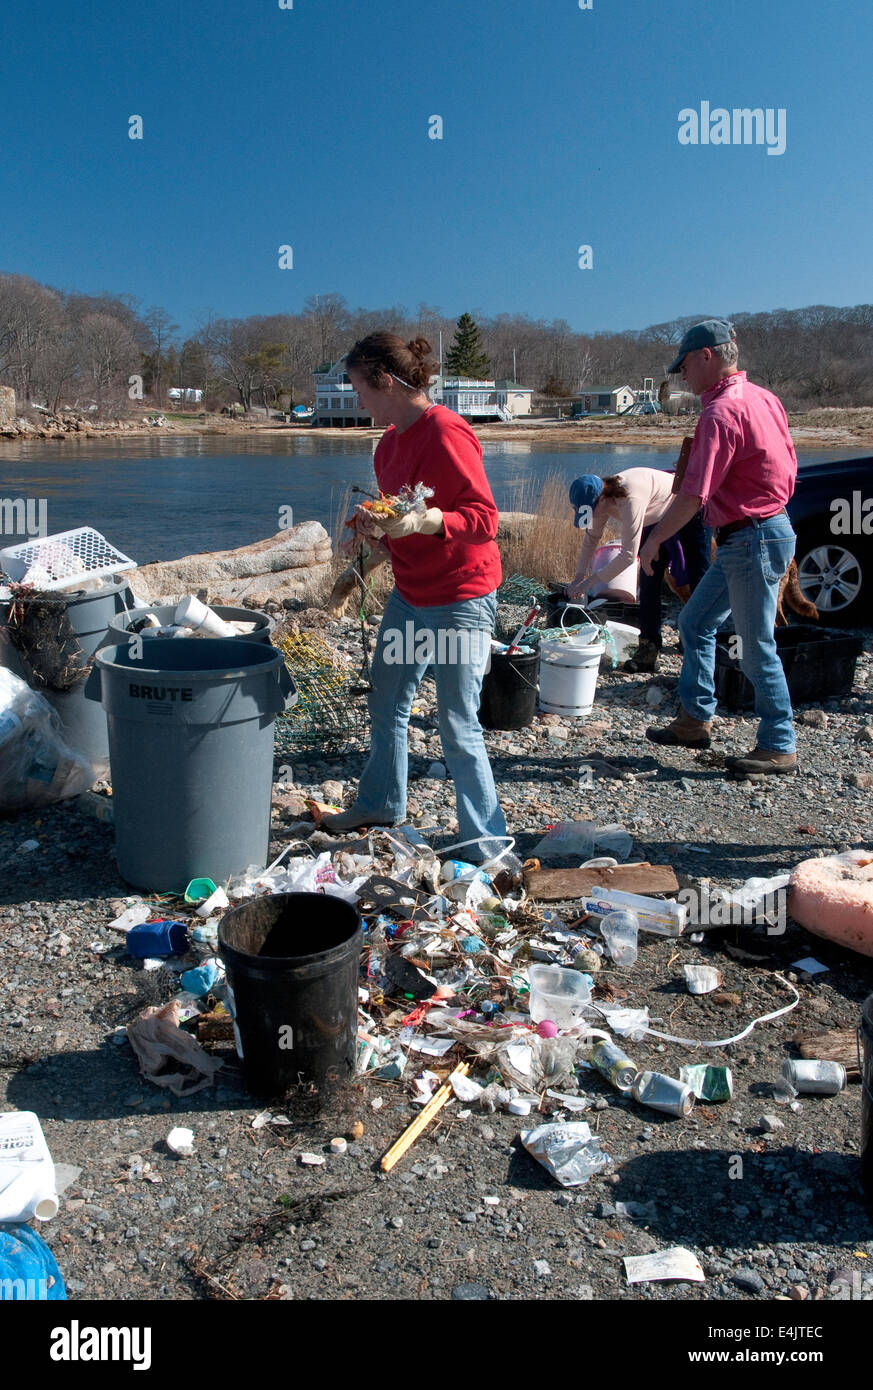 Removing and sorting trash from the beach on Eastern Point in Gloucester, Massachusetts - Stock Image